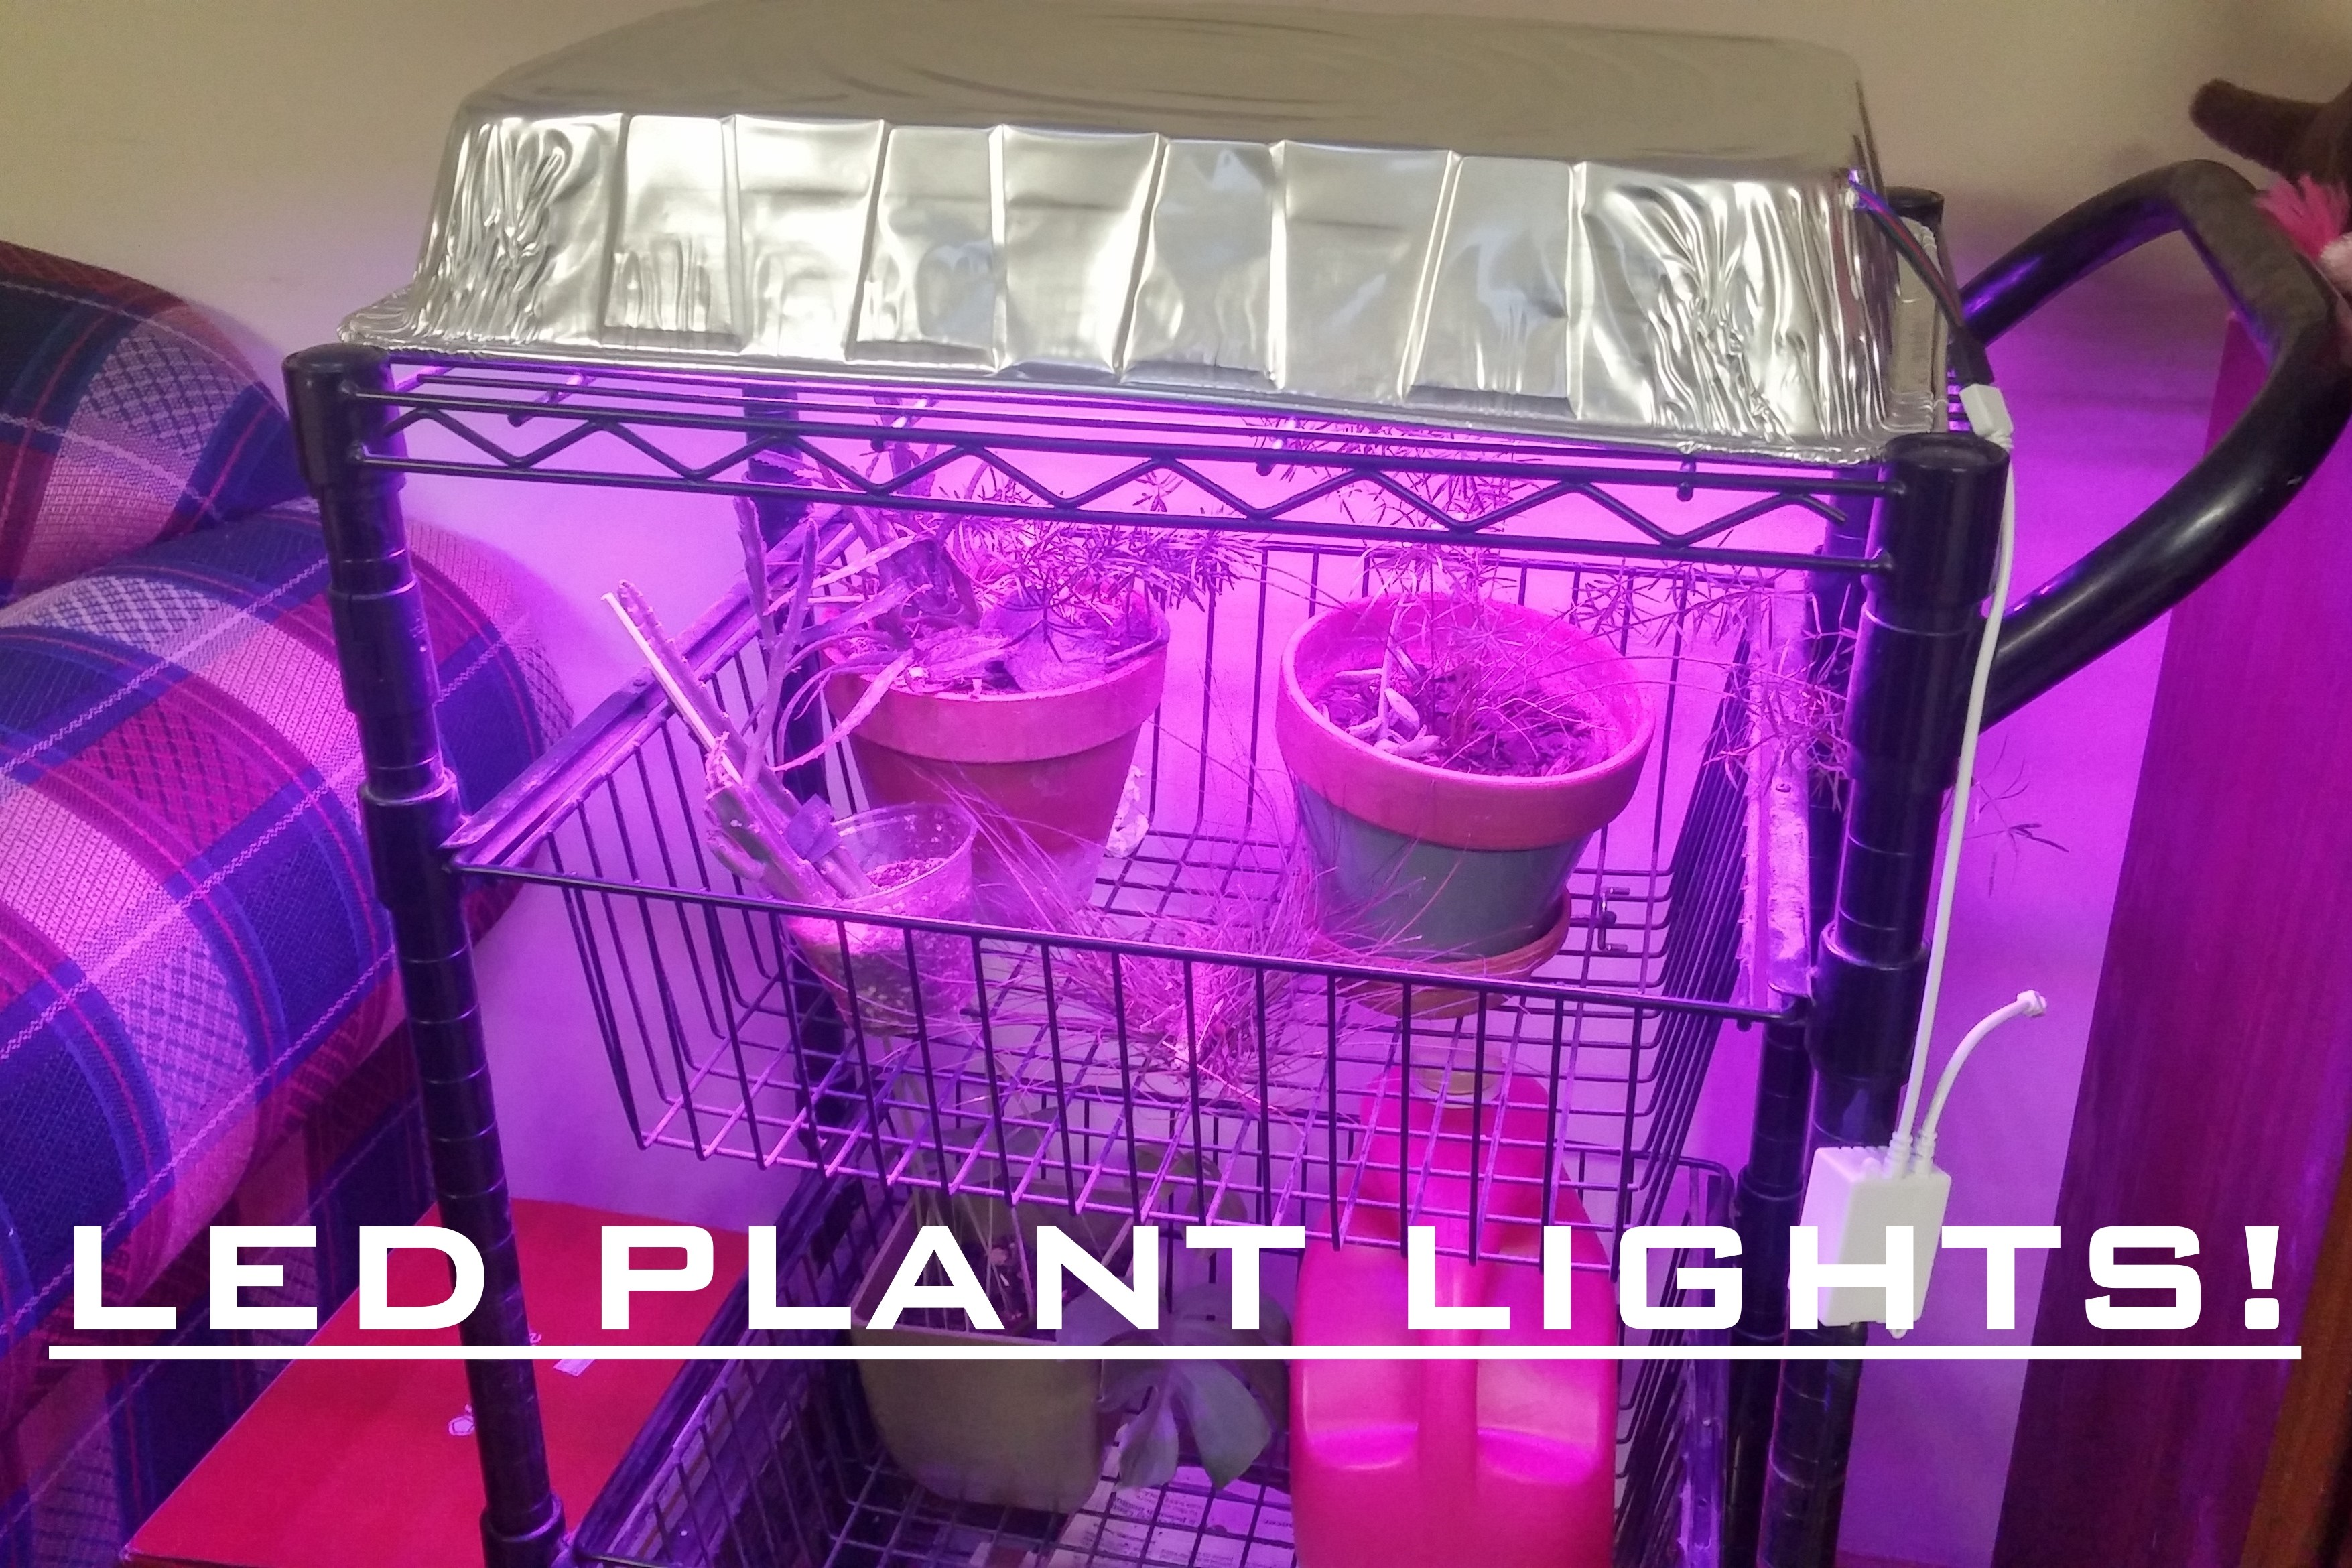 LED Grow light for indoor plants for $30! Easy!